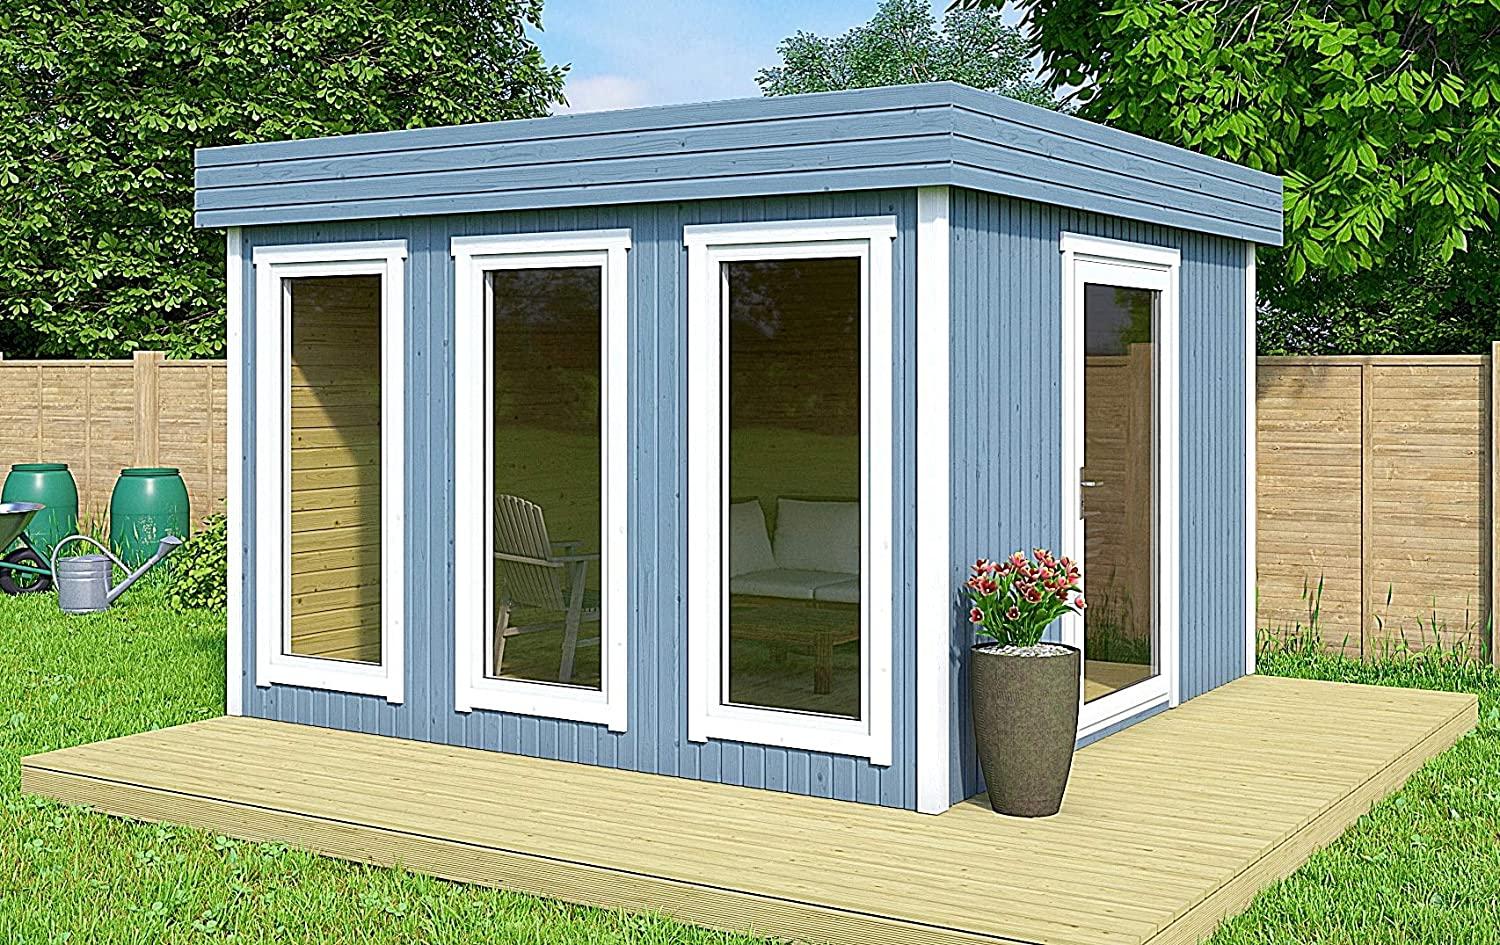 Amazon.com: Allwood Halmstad | 106 SQF Studio Cabin Kit, Garden ...